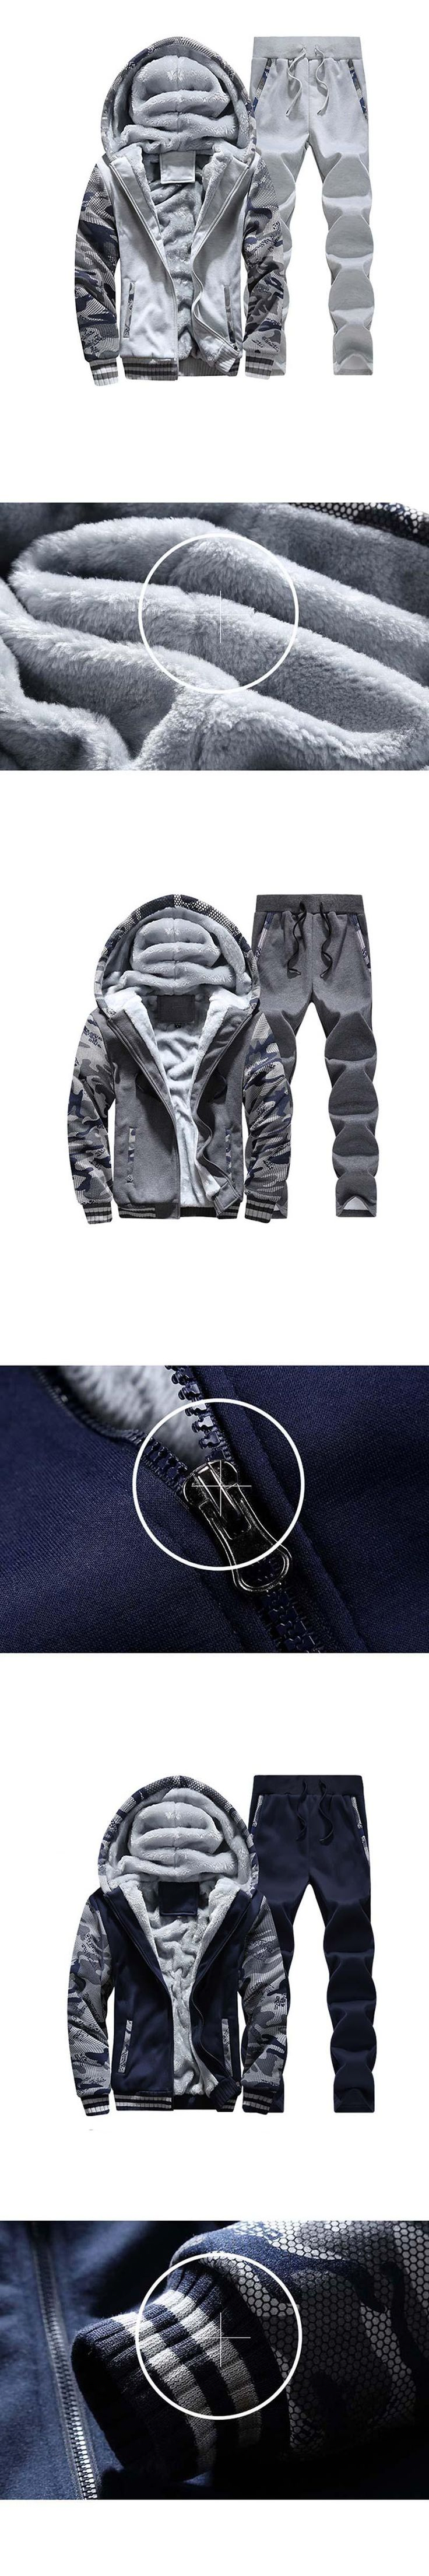 Men's Sets Men Winter Brand Plus Mens Thickened Hoodie Suit Male Cardigan Zipper Tracksuits Sets Two-Piece Pants Sportswear